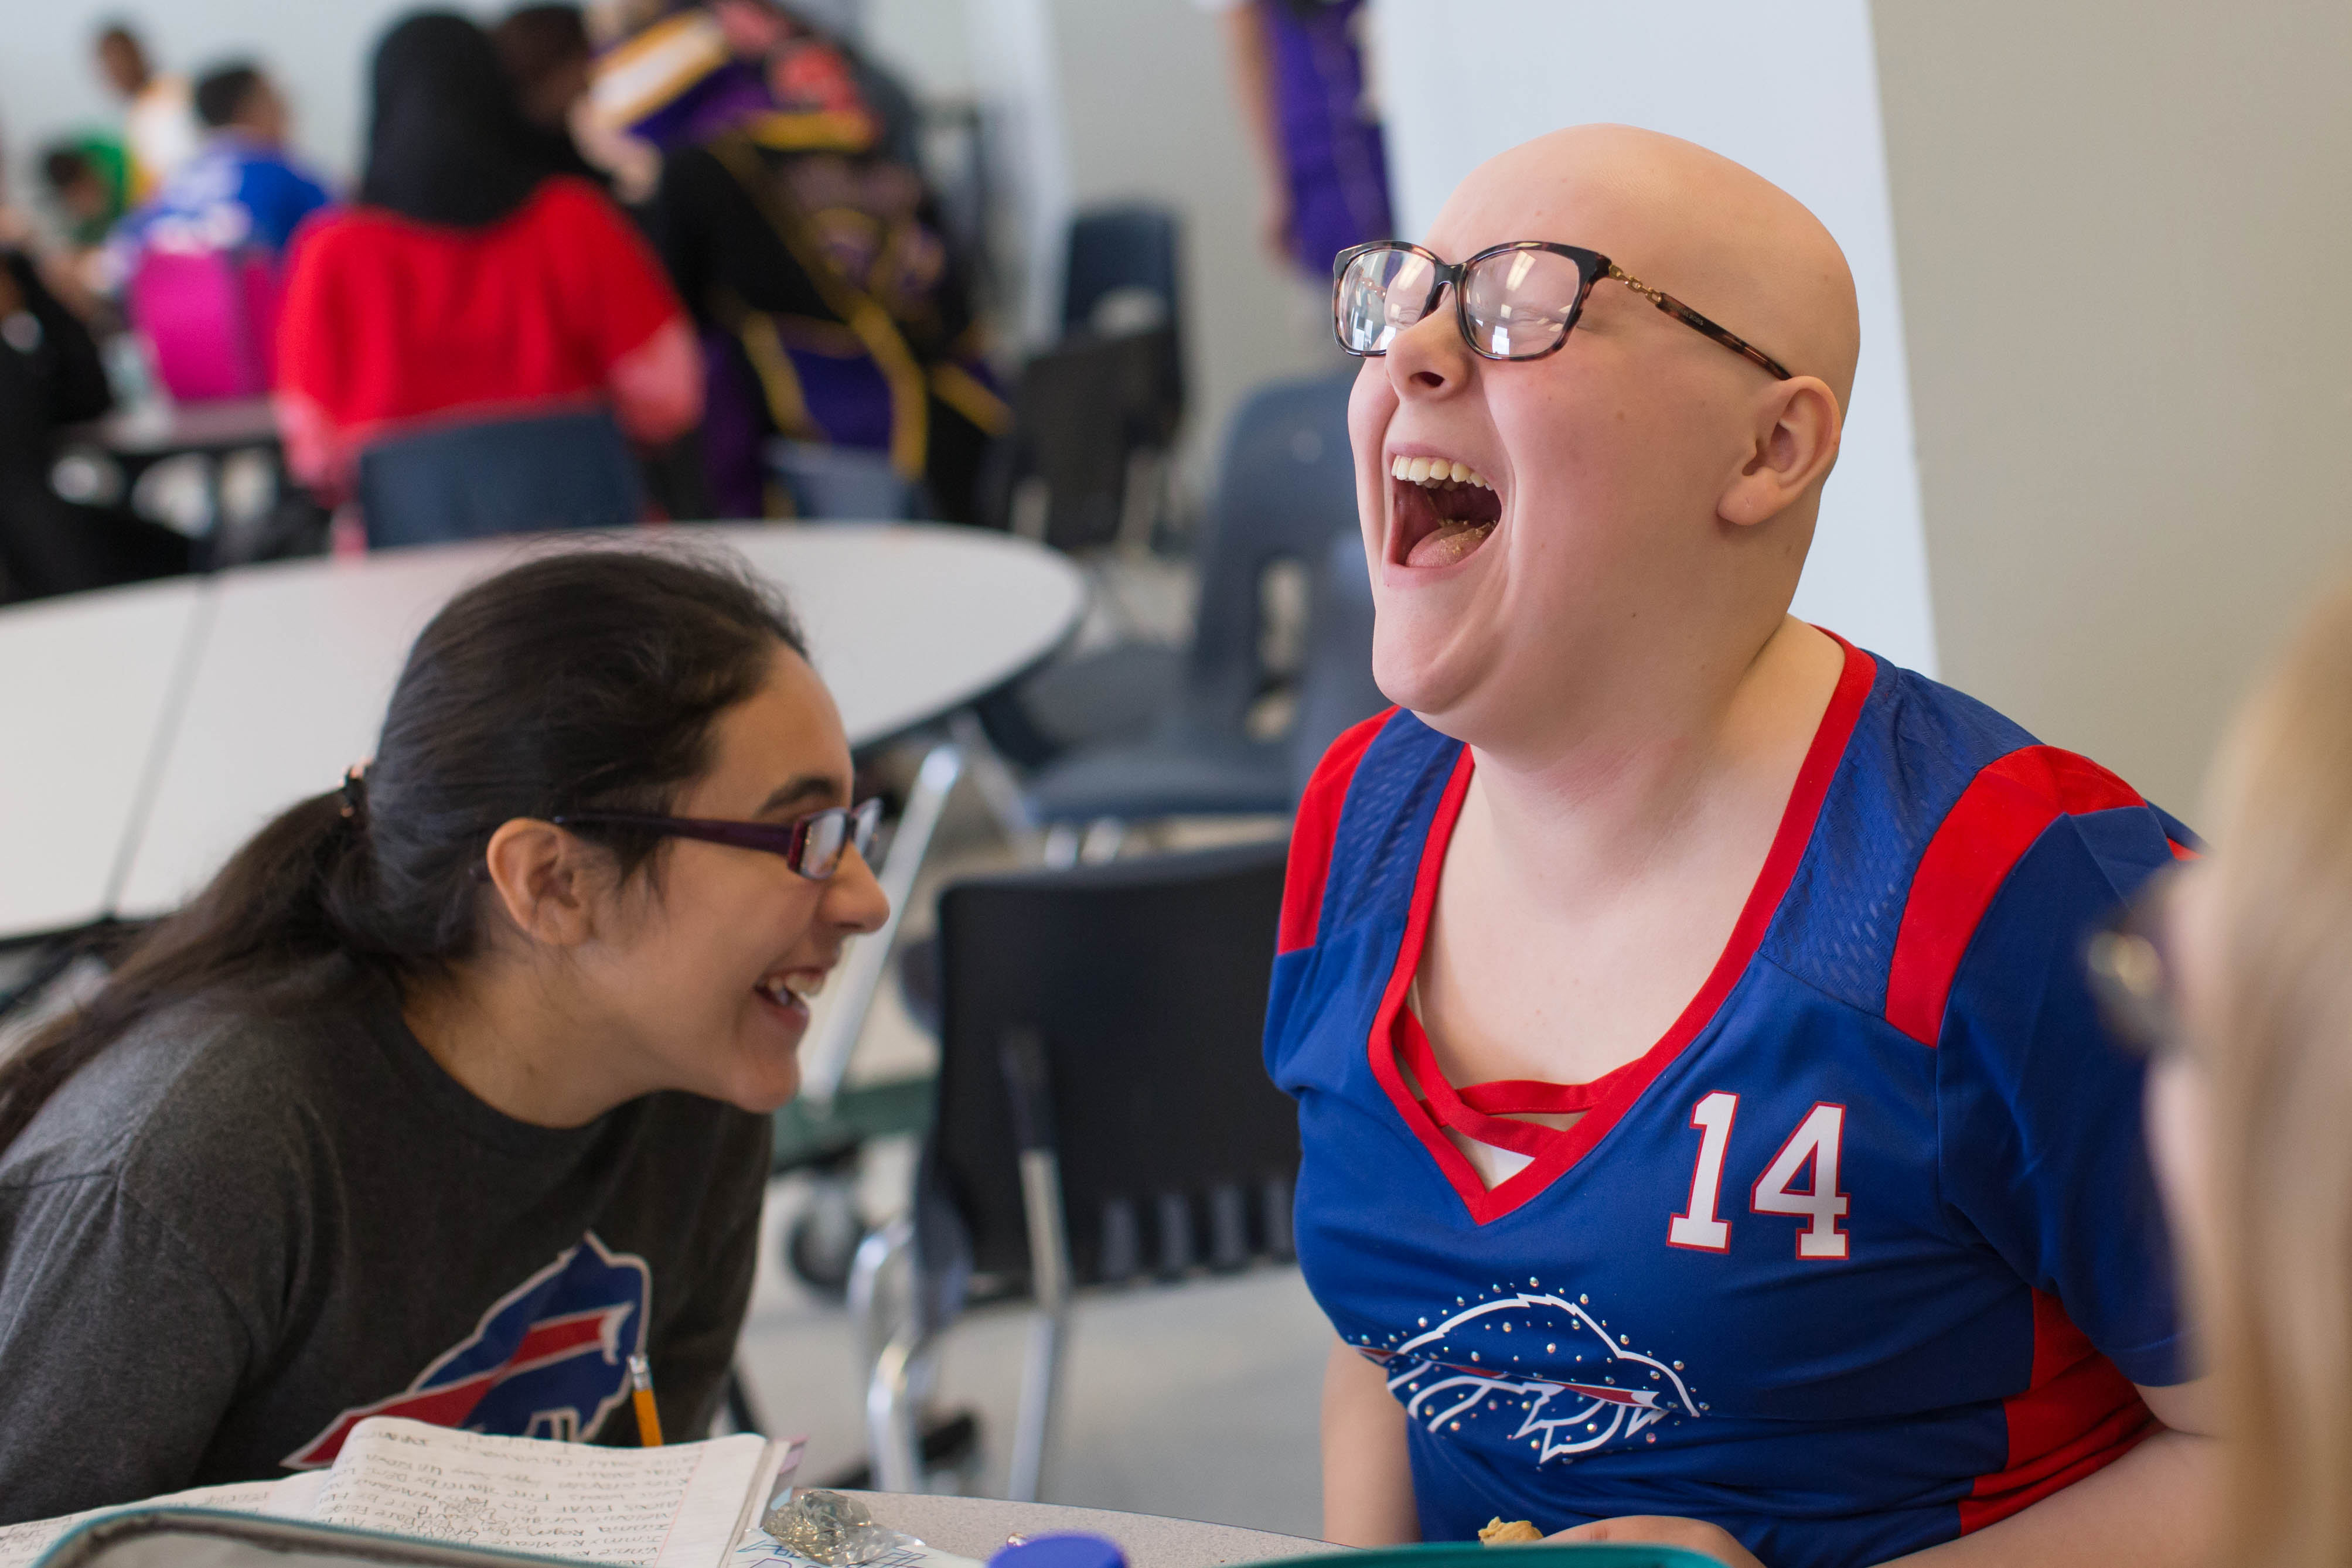 Twelve-year-old Katrina Racine, of Lackawanna,  laughs at a joke while having lunch with her friends in the cafeteria at Global Concepts Charter School in Lackawanna on  Thursday, Feb. 16, 2017.  Katrina has alopecia, a disease which caused her to lose her hair when she was 7.  (Derek Gee/Buffalo News)